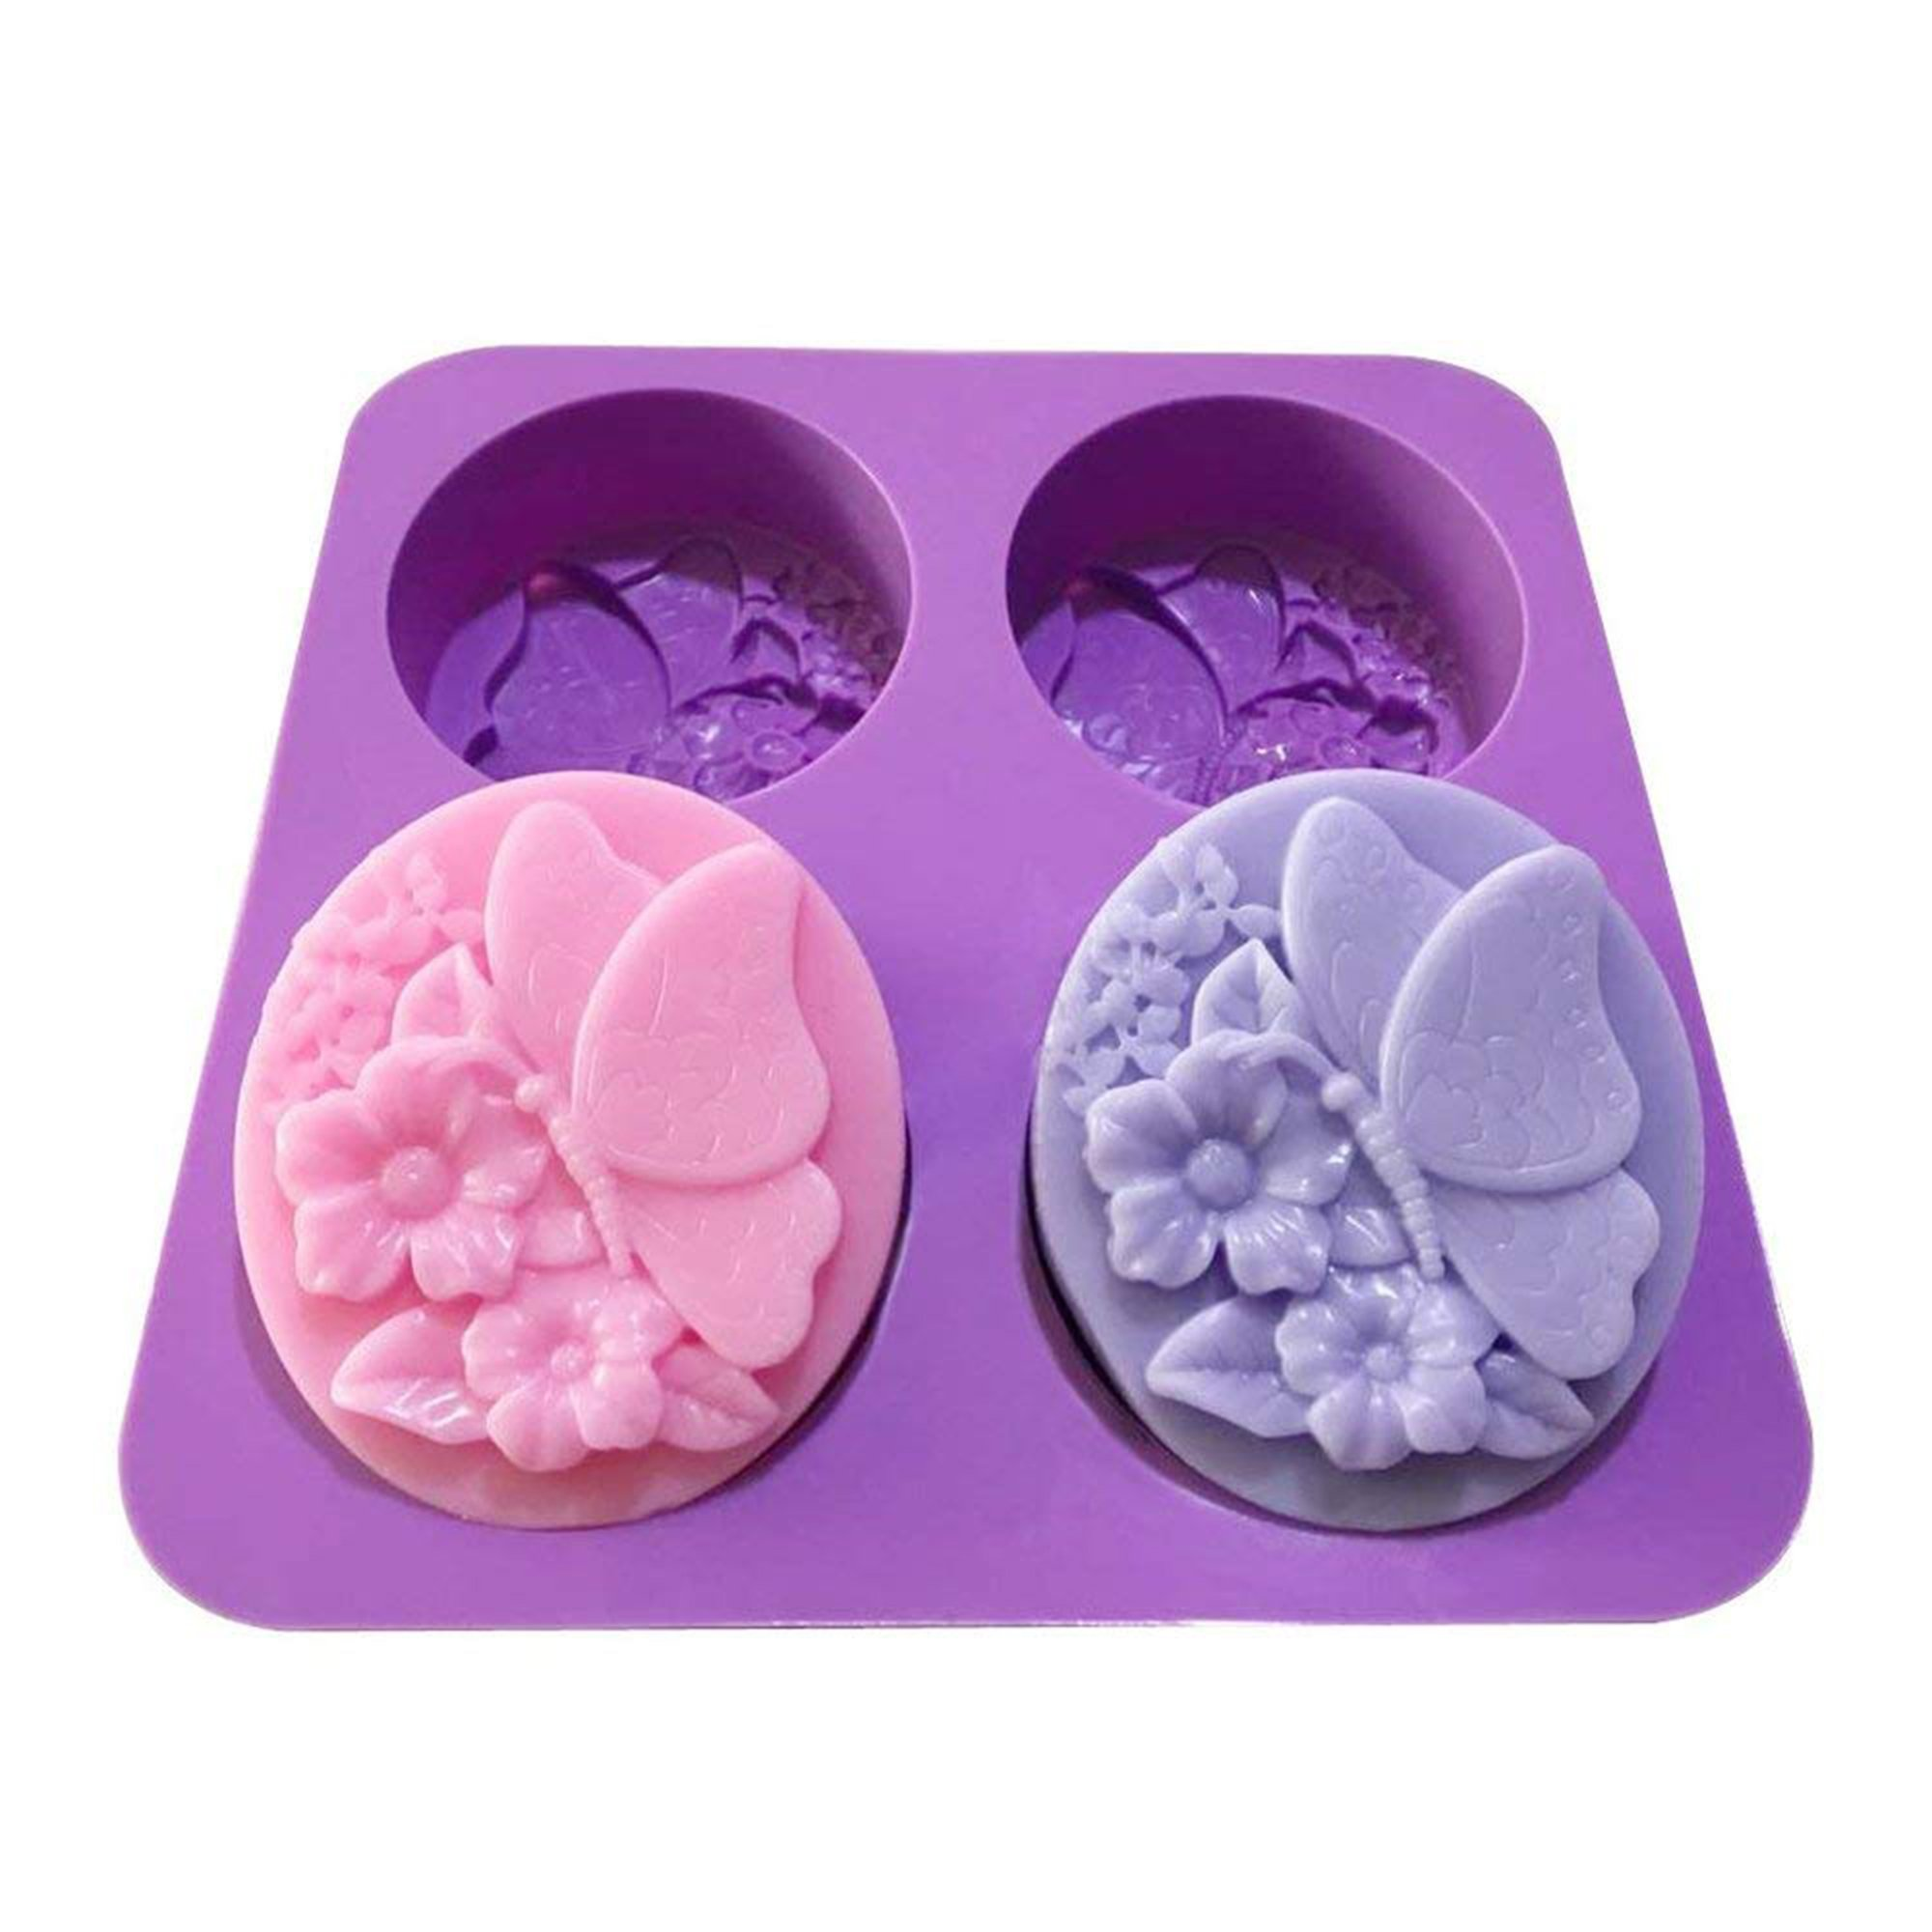 4 Holes Flower Butterfly Oval Bath Soap Silicone Mold Chocolate Cake Jelly Candle Mold Handmade Soap Molds,Set of 2